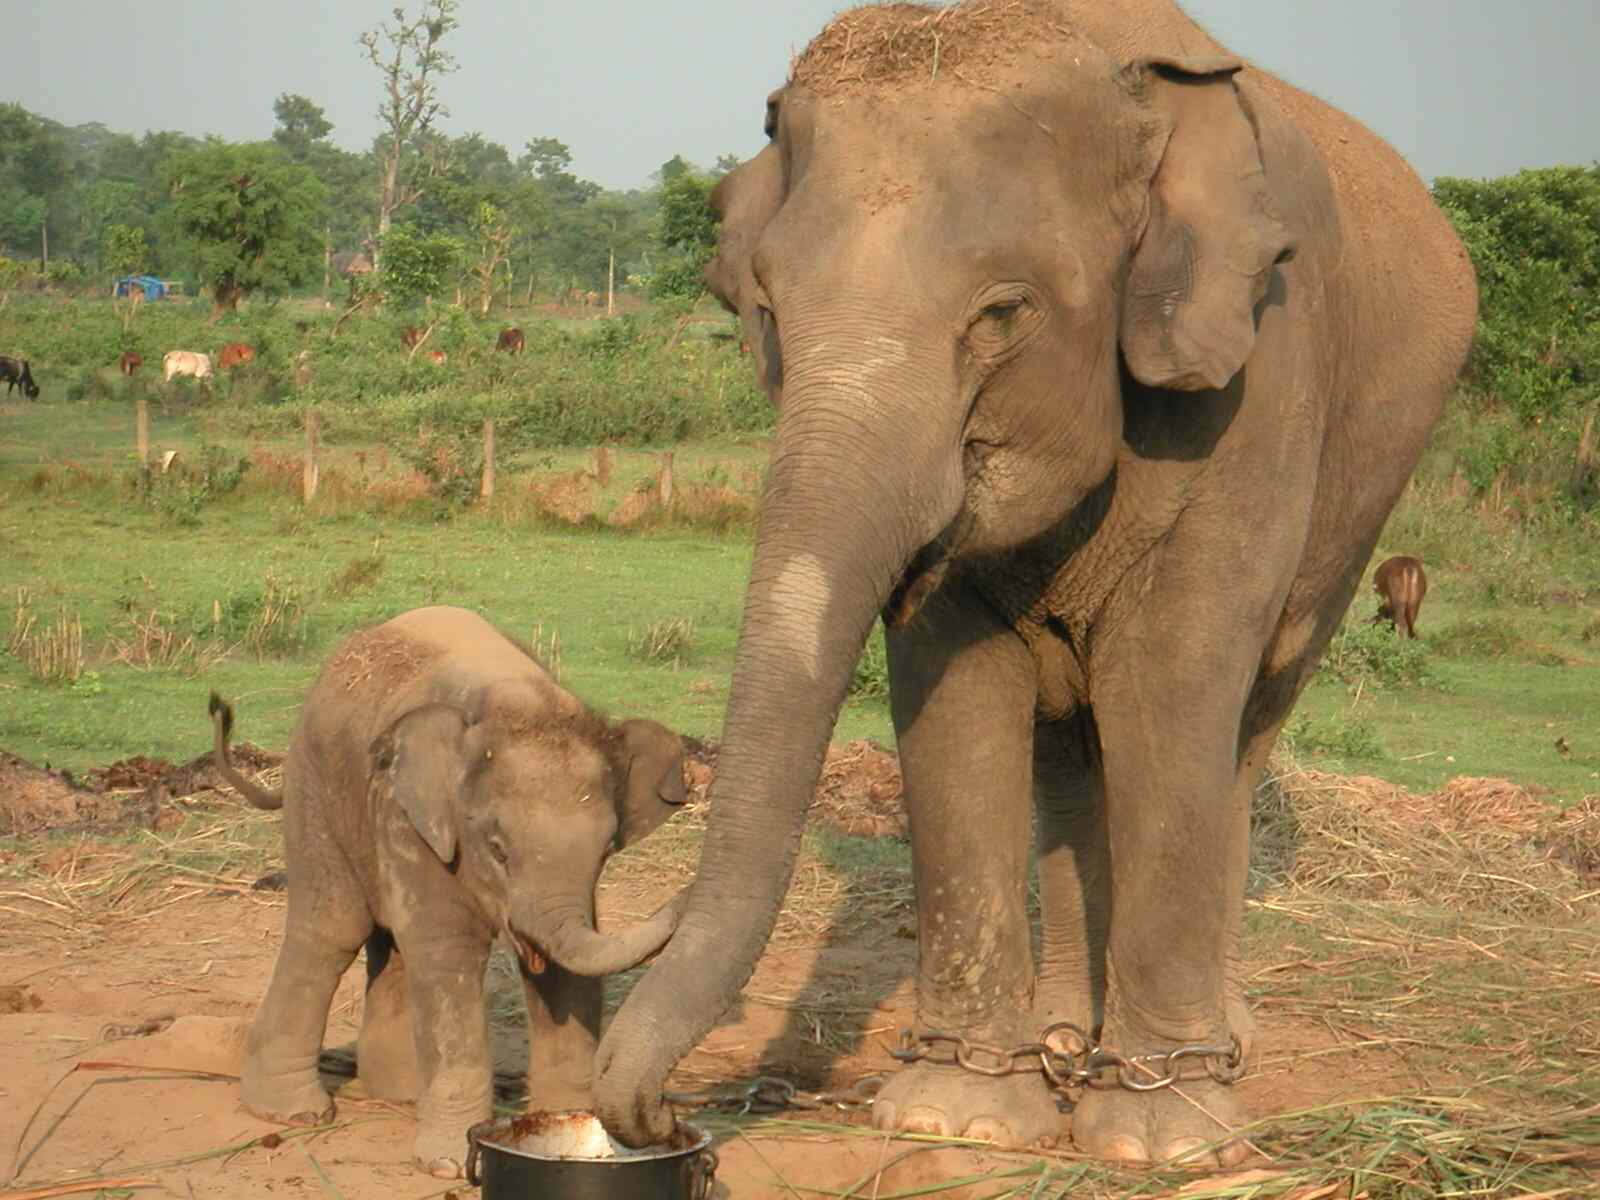 Chitwan, elephant breeding center, Sauraha